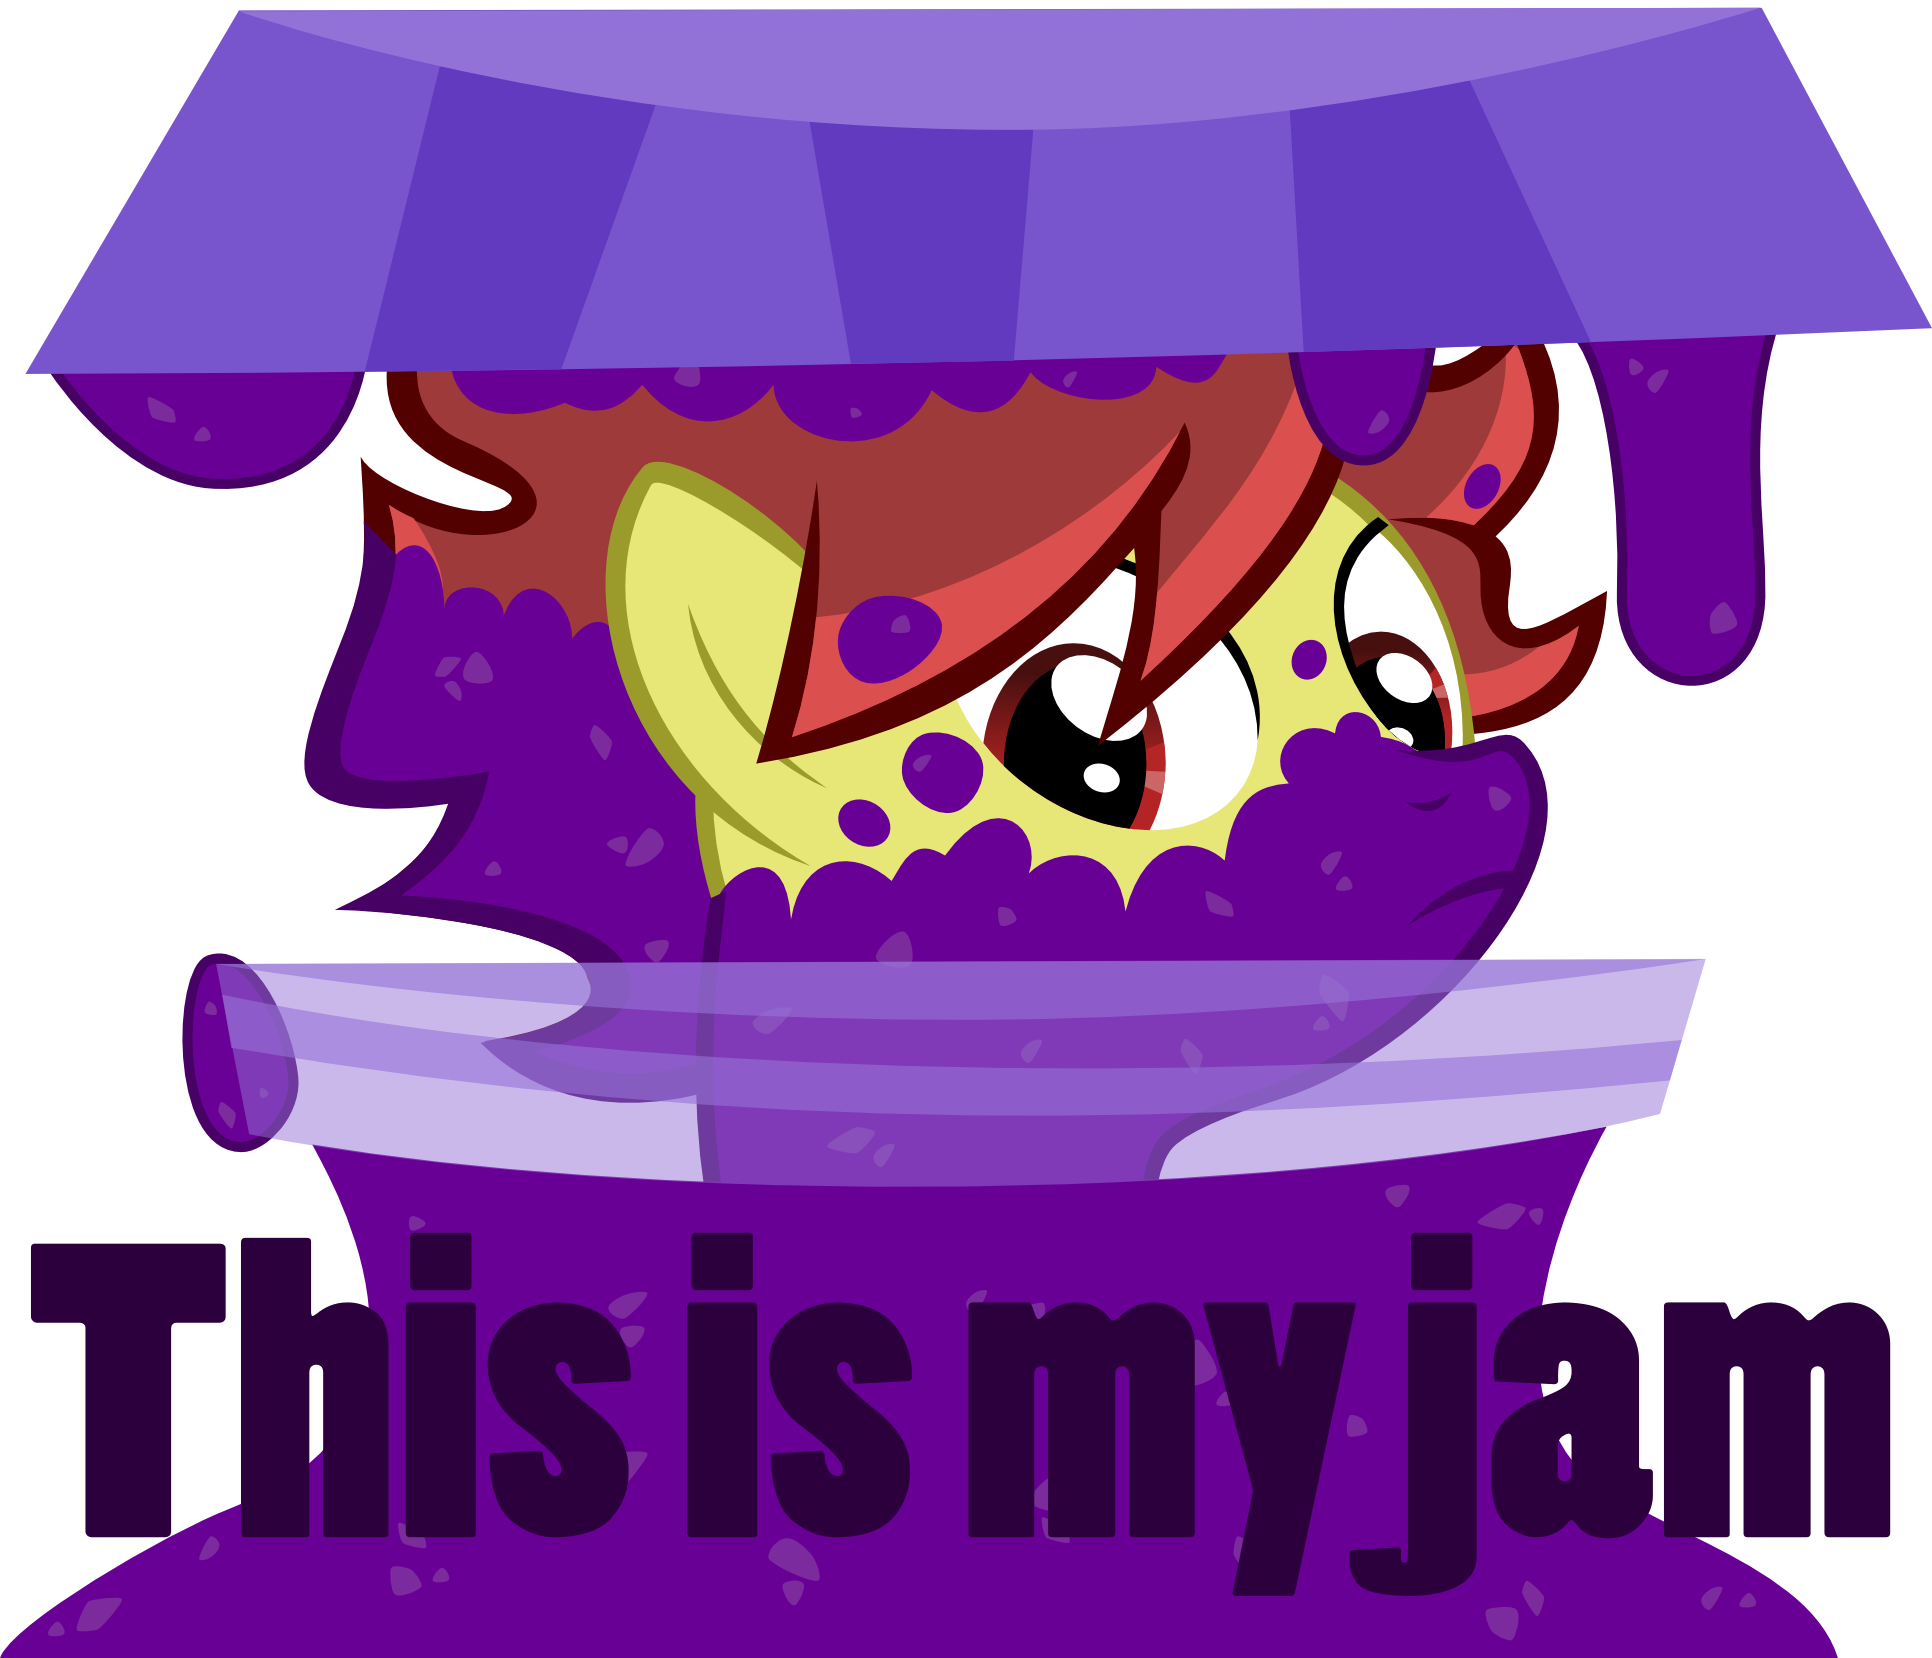 This is my jam by Kalyandra